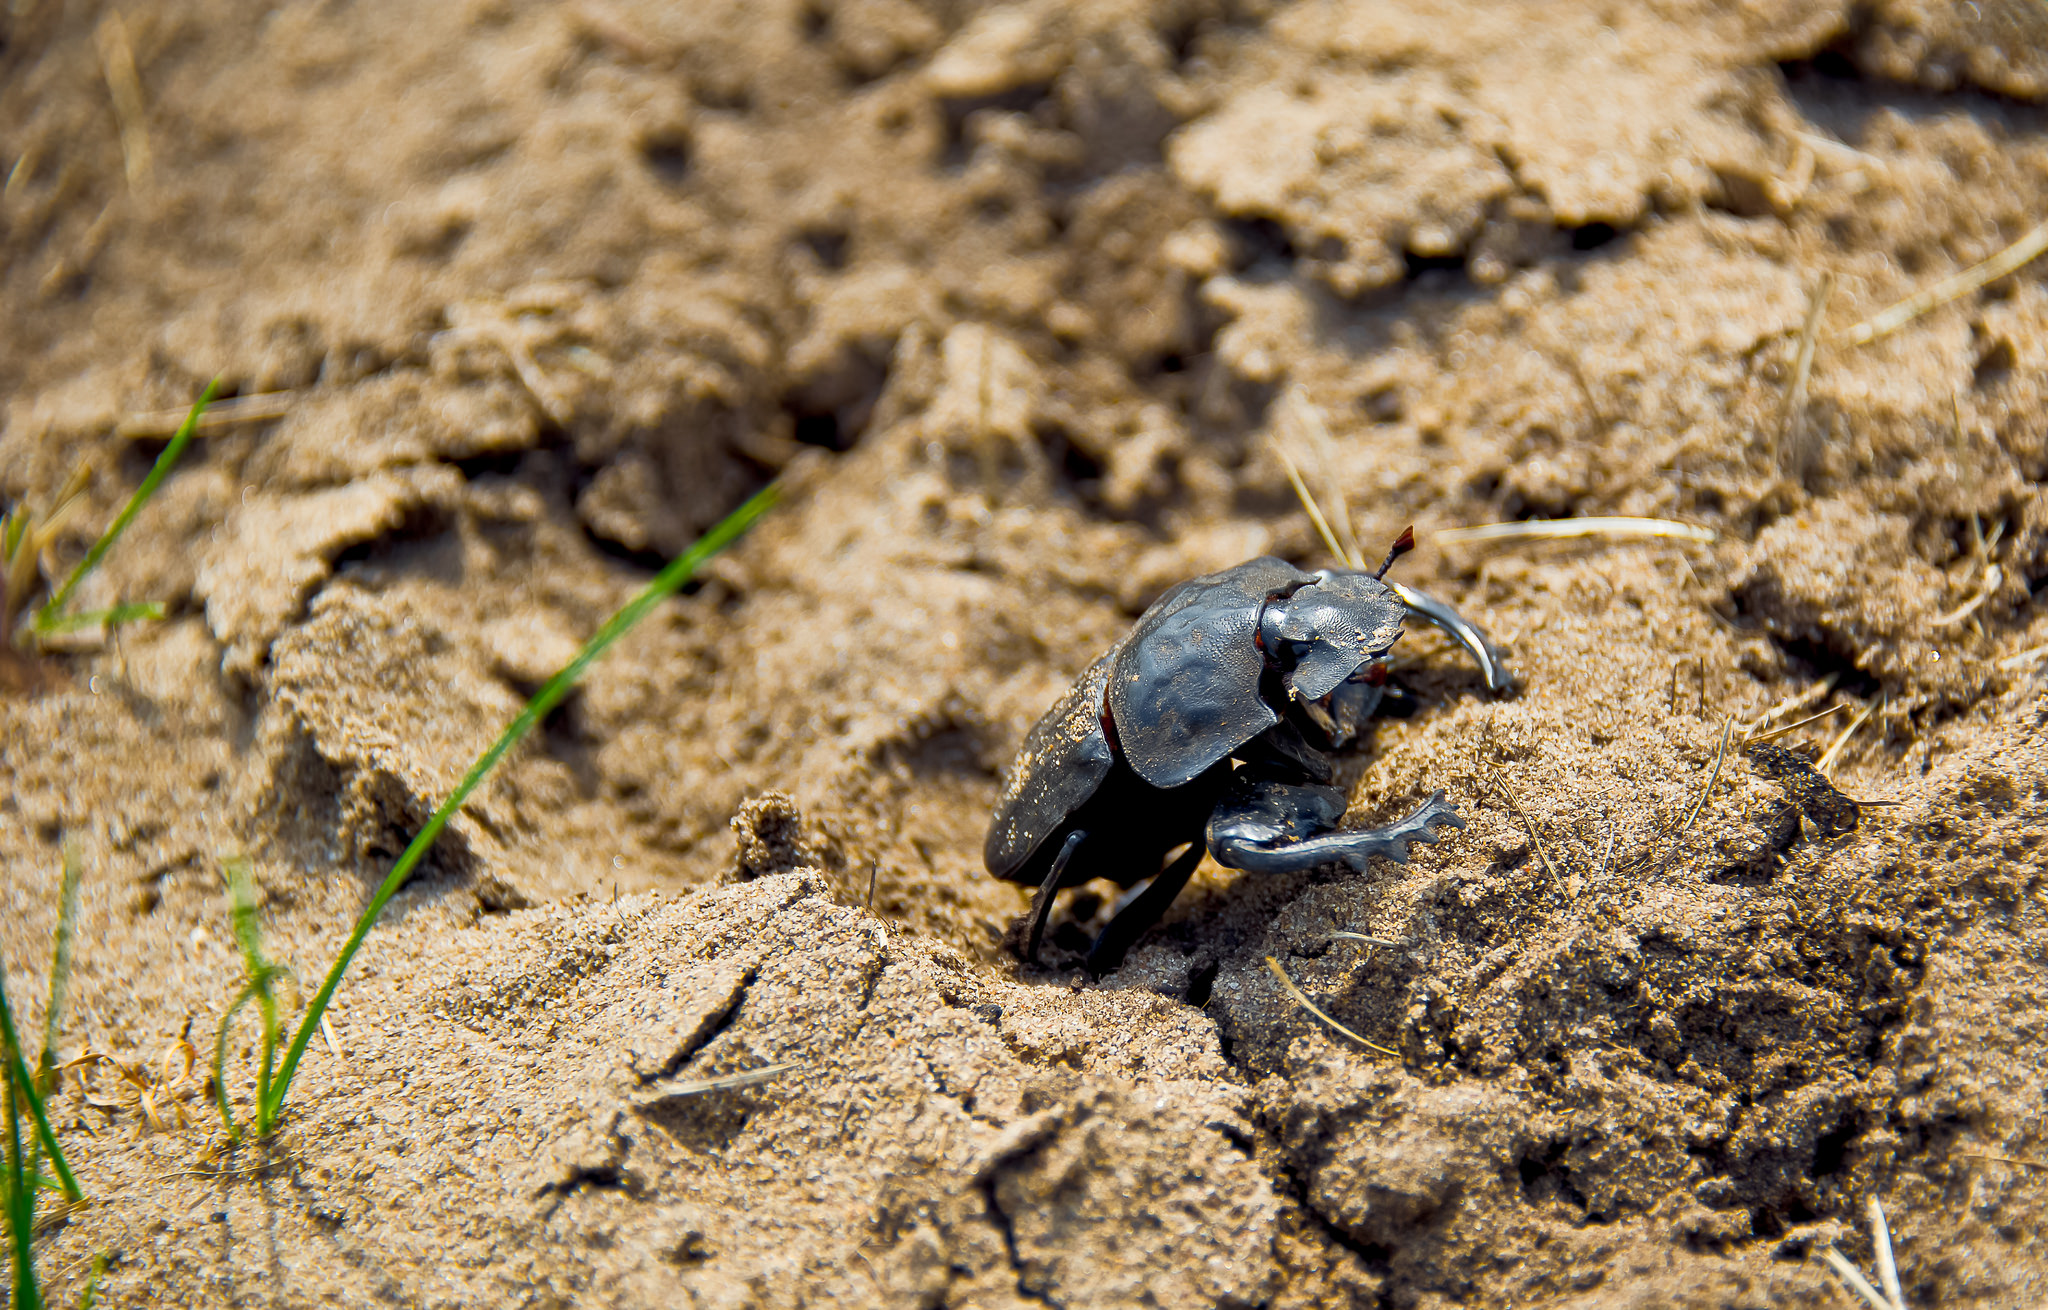 A dung beetle crawling. Credit: wildlife_encounters/Flickr, CC BY 2.0